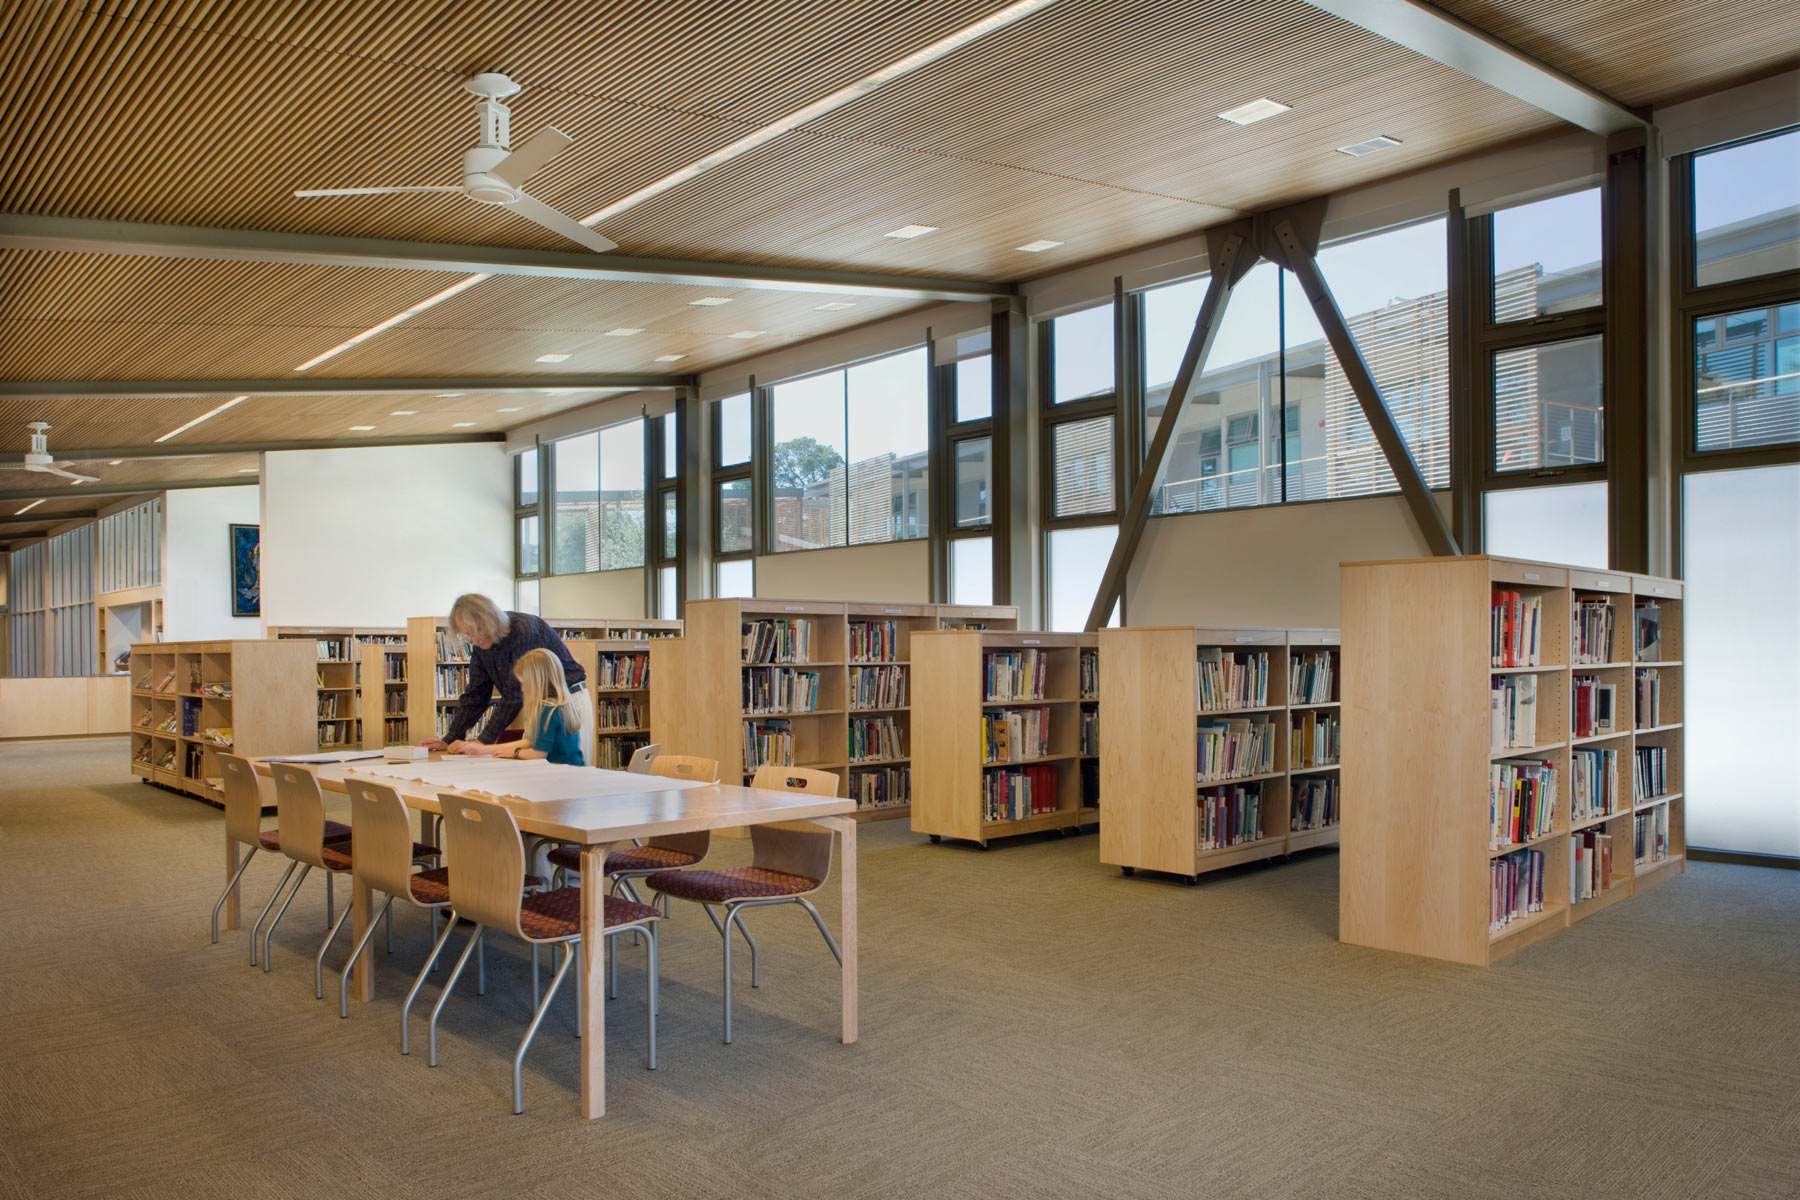 The Nueva Hillside Learning Complex is an innovative educational environment in the San Francisco Bay Area that is a sustainable model for 21st century students- the campus is certified LEED Gold and promotes environment stewardship and a passion for lifelong learning.